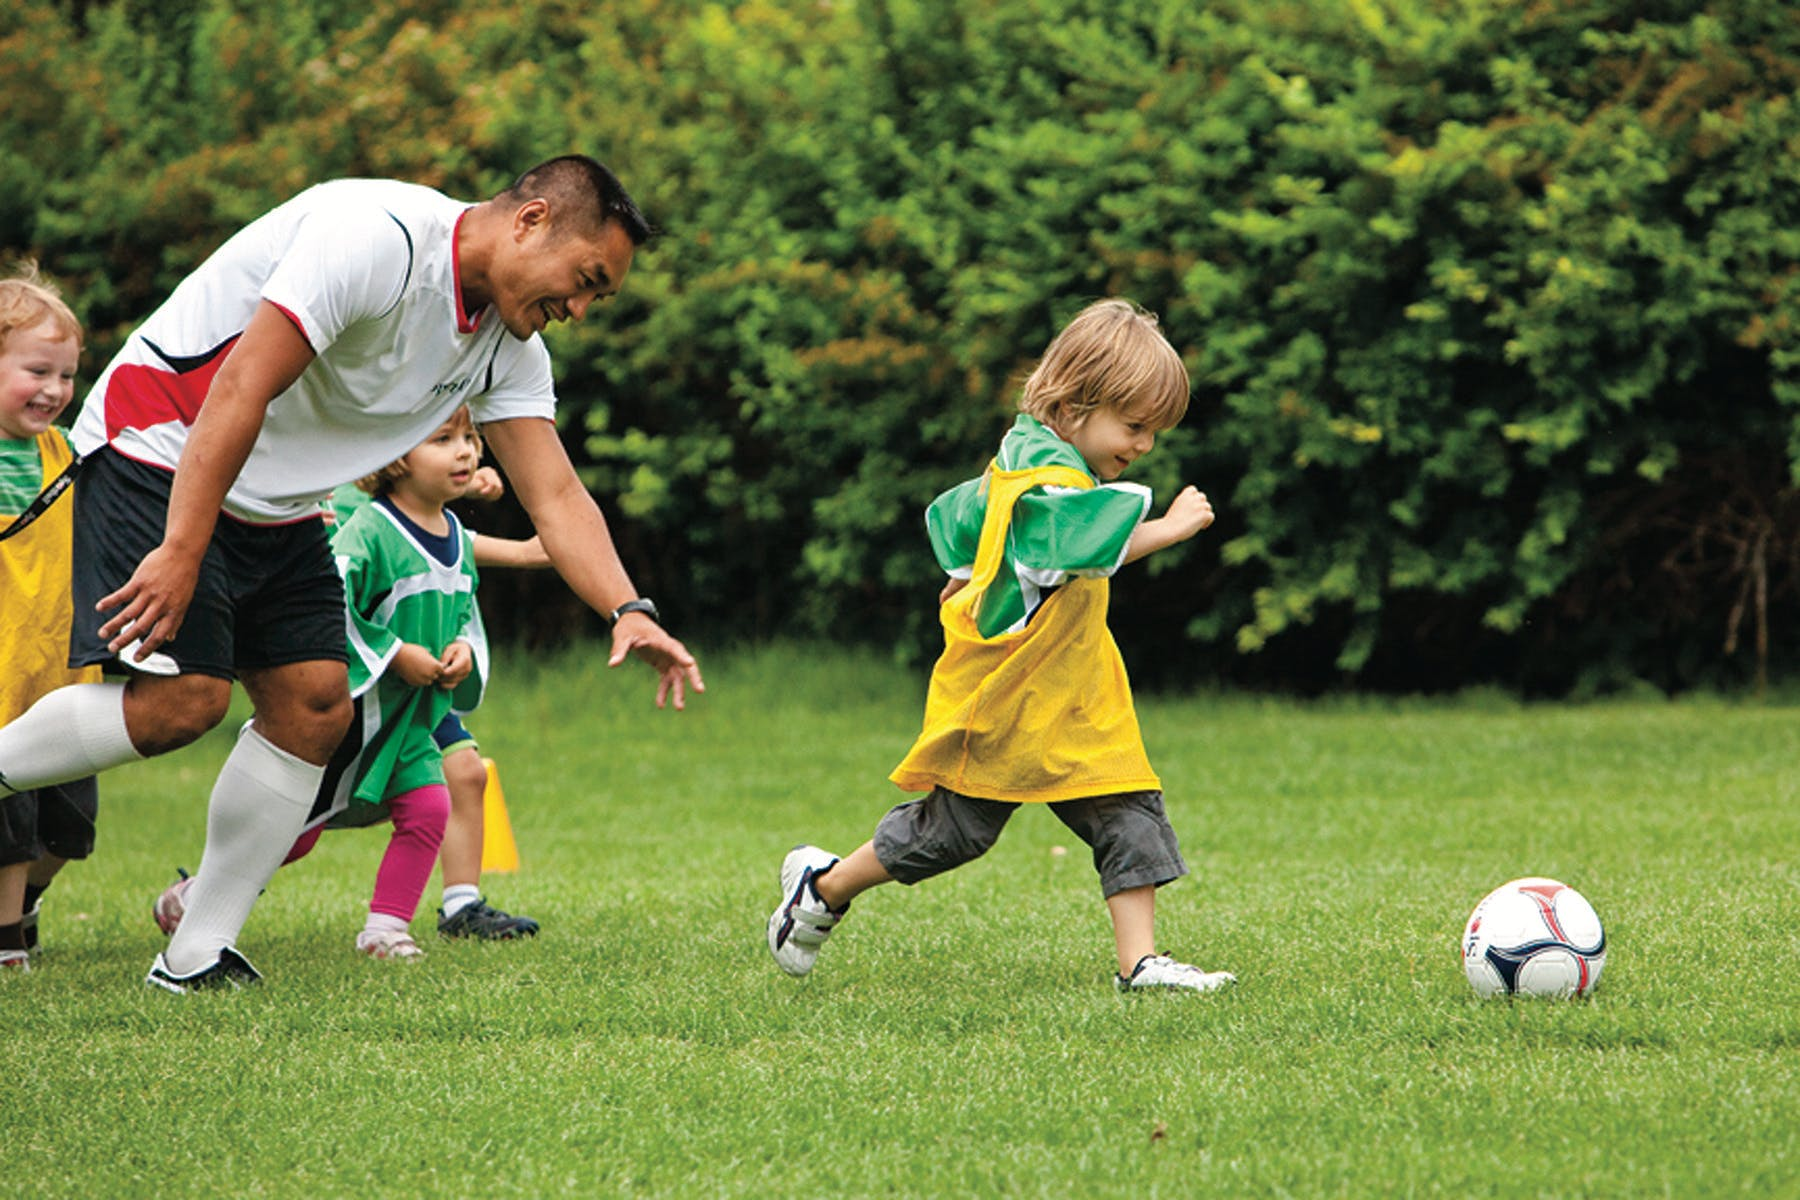 Multi Sport Camp for Children ages 3-8 June 2